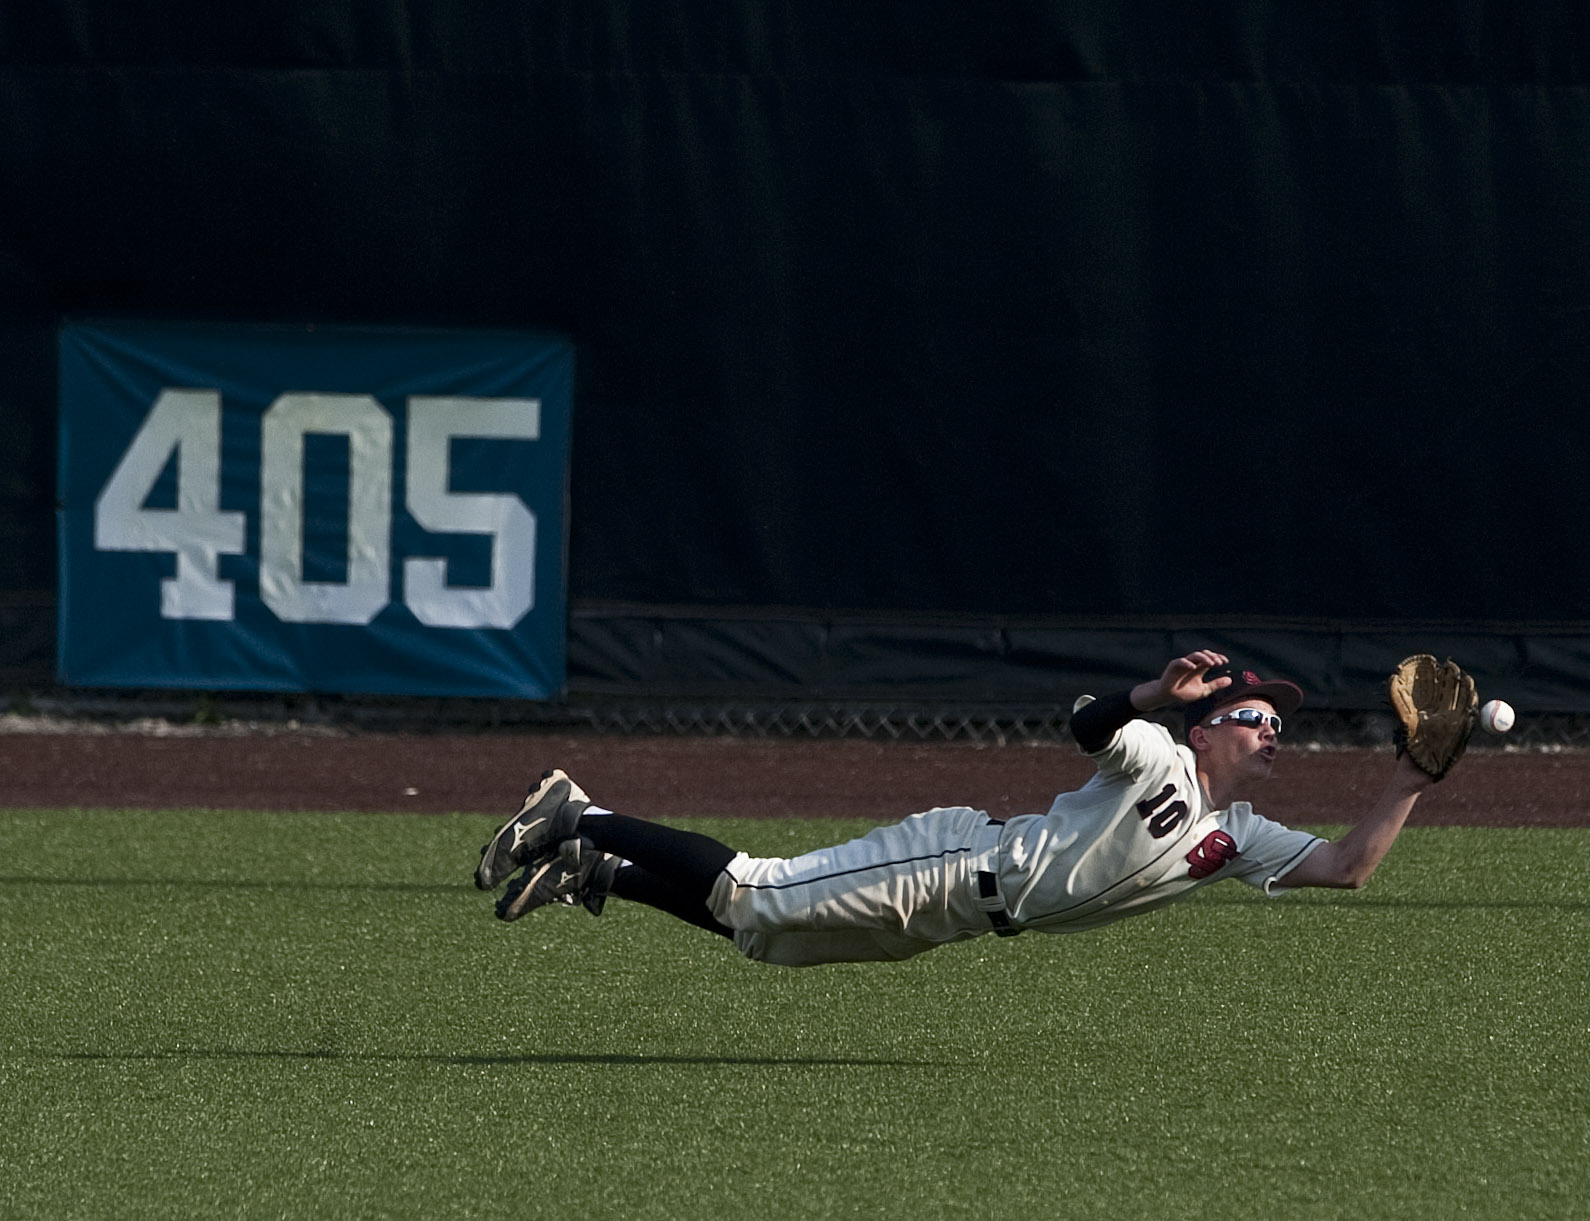 Serra Catholic's Jake Eged dives for a ball against Greensburg Central Catholic in the WPIAL Class A championship game on Wednesday, June, 2016, at Consol Energy Park in Washington. Serra Catholic won 6-3.